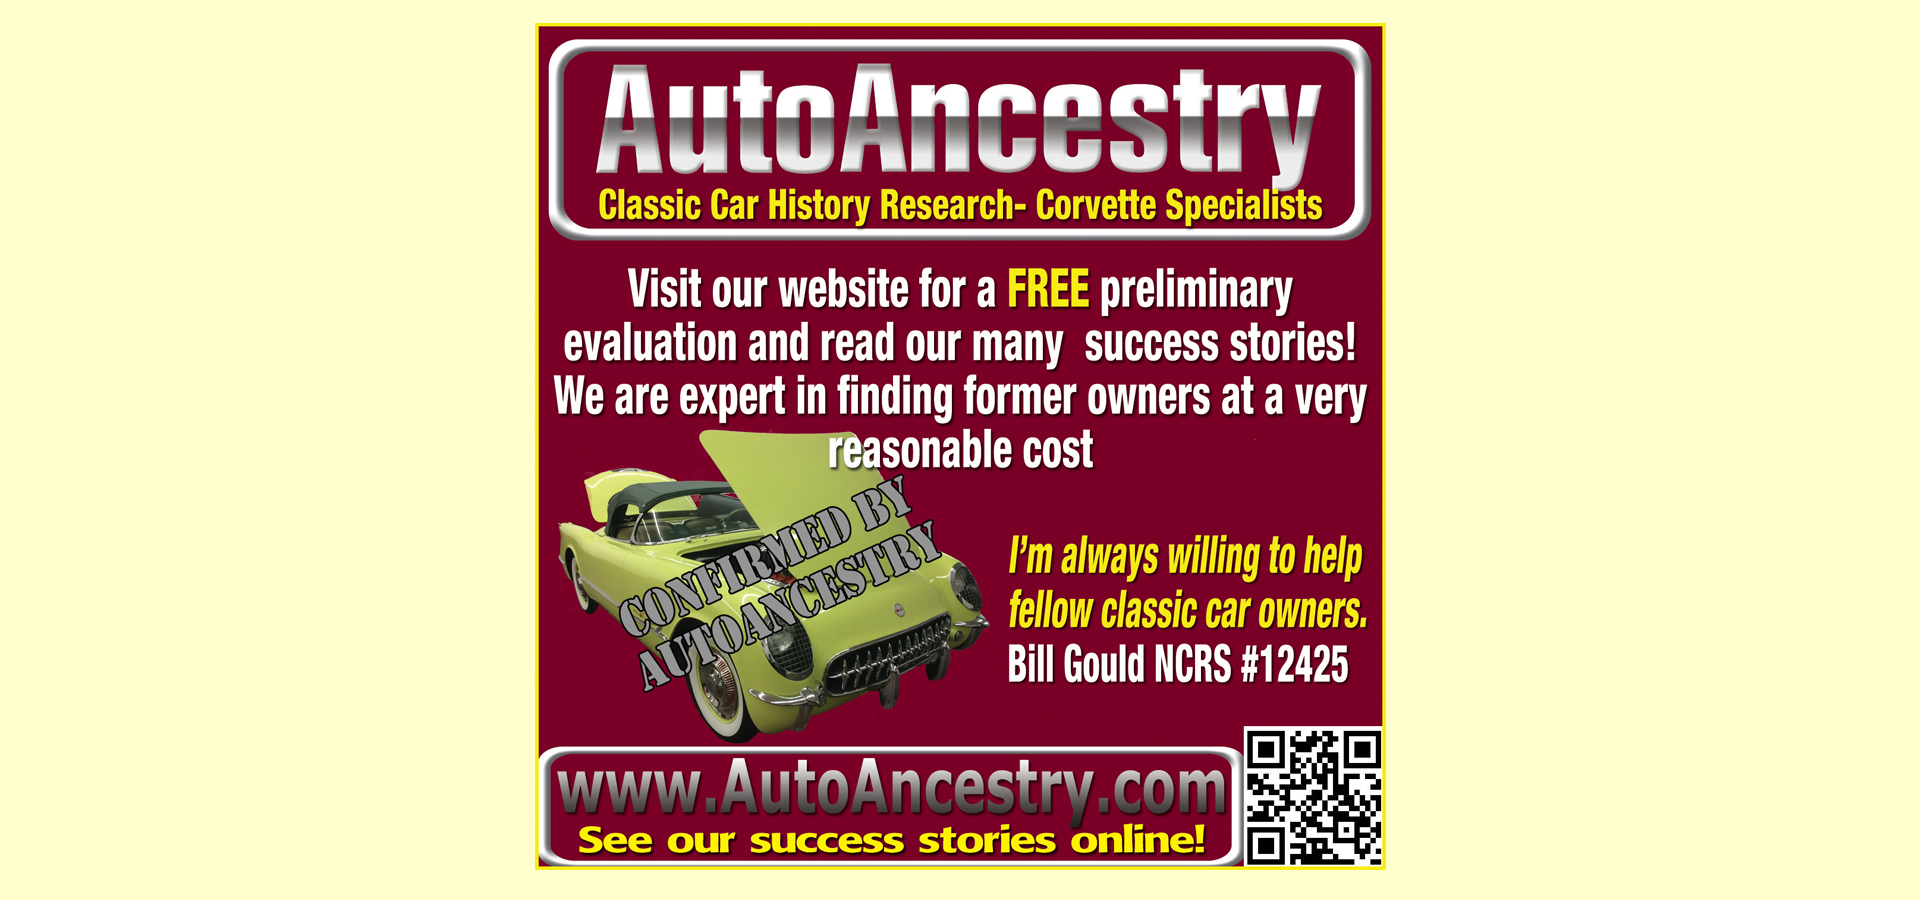 optimizer-slider-autoancestrydotcom-ad